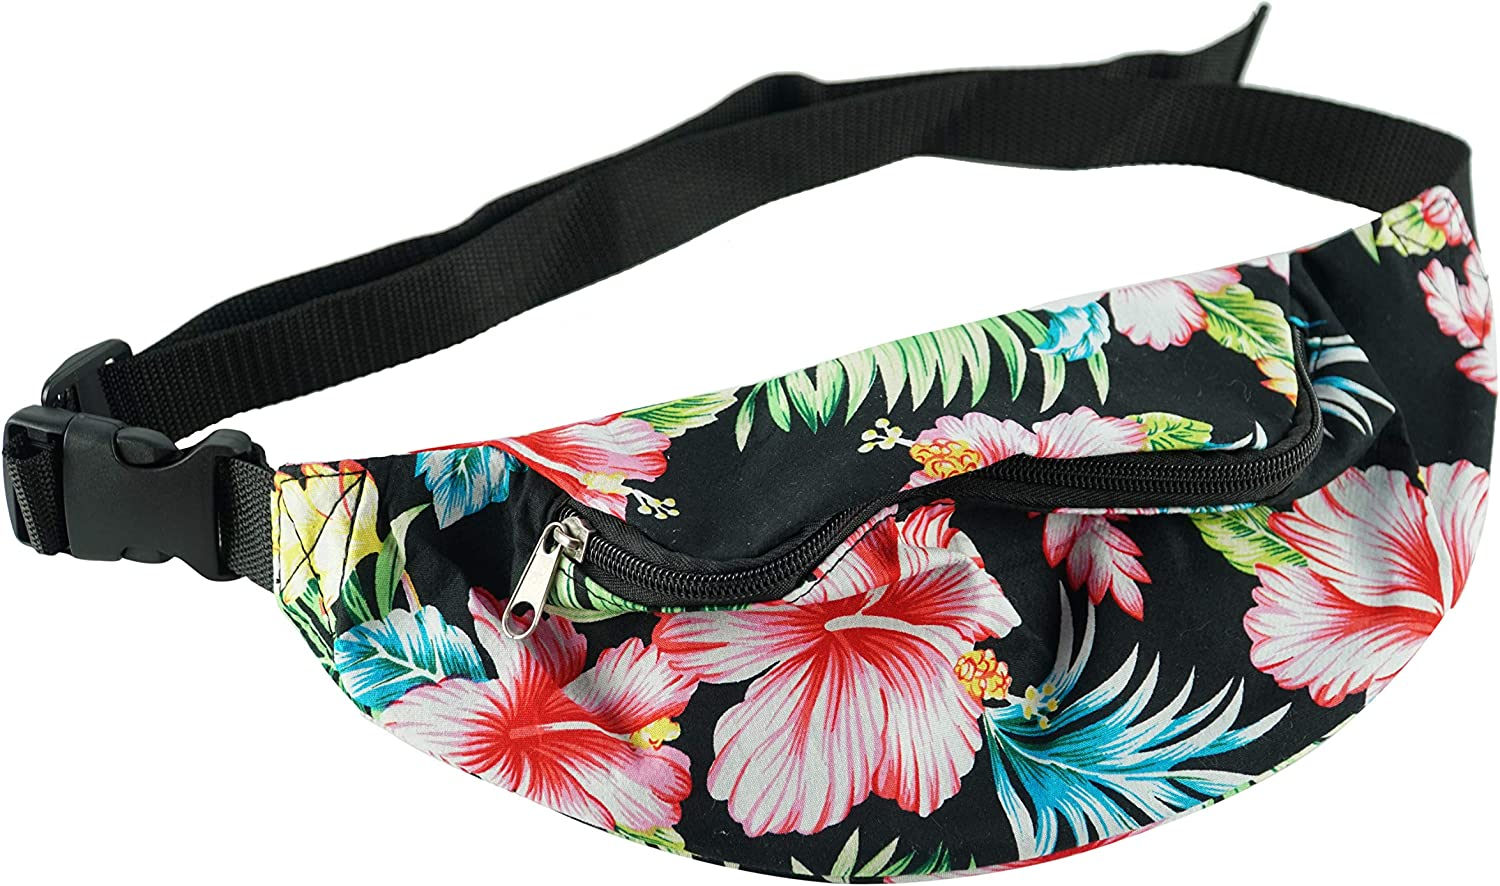 Home-X Floral Fanny Pack, Running Belt, Versatile Bum Bag with 1 Zipper Pocket